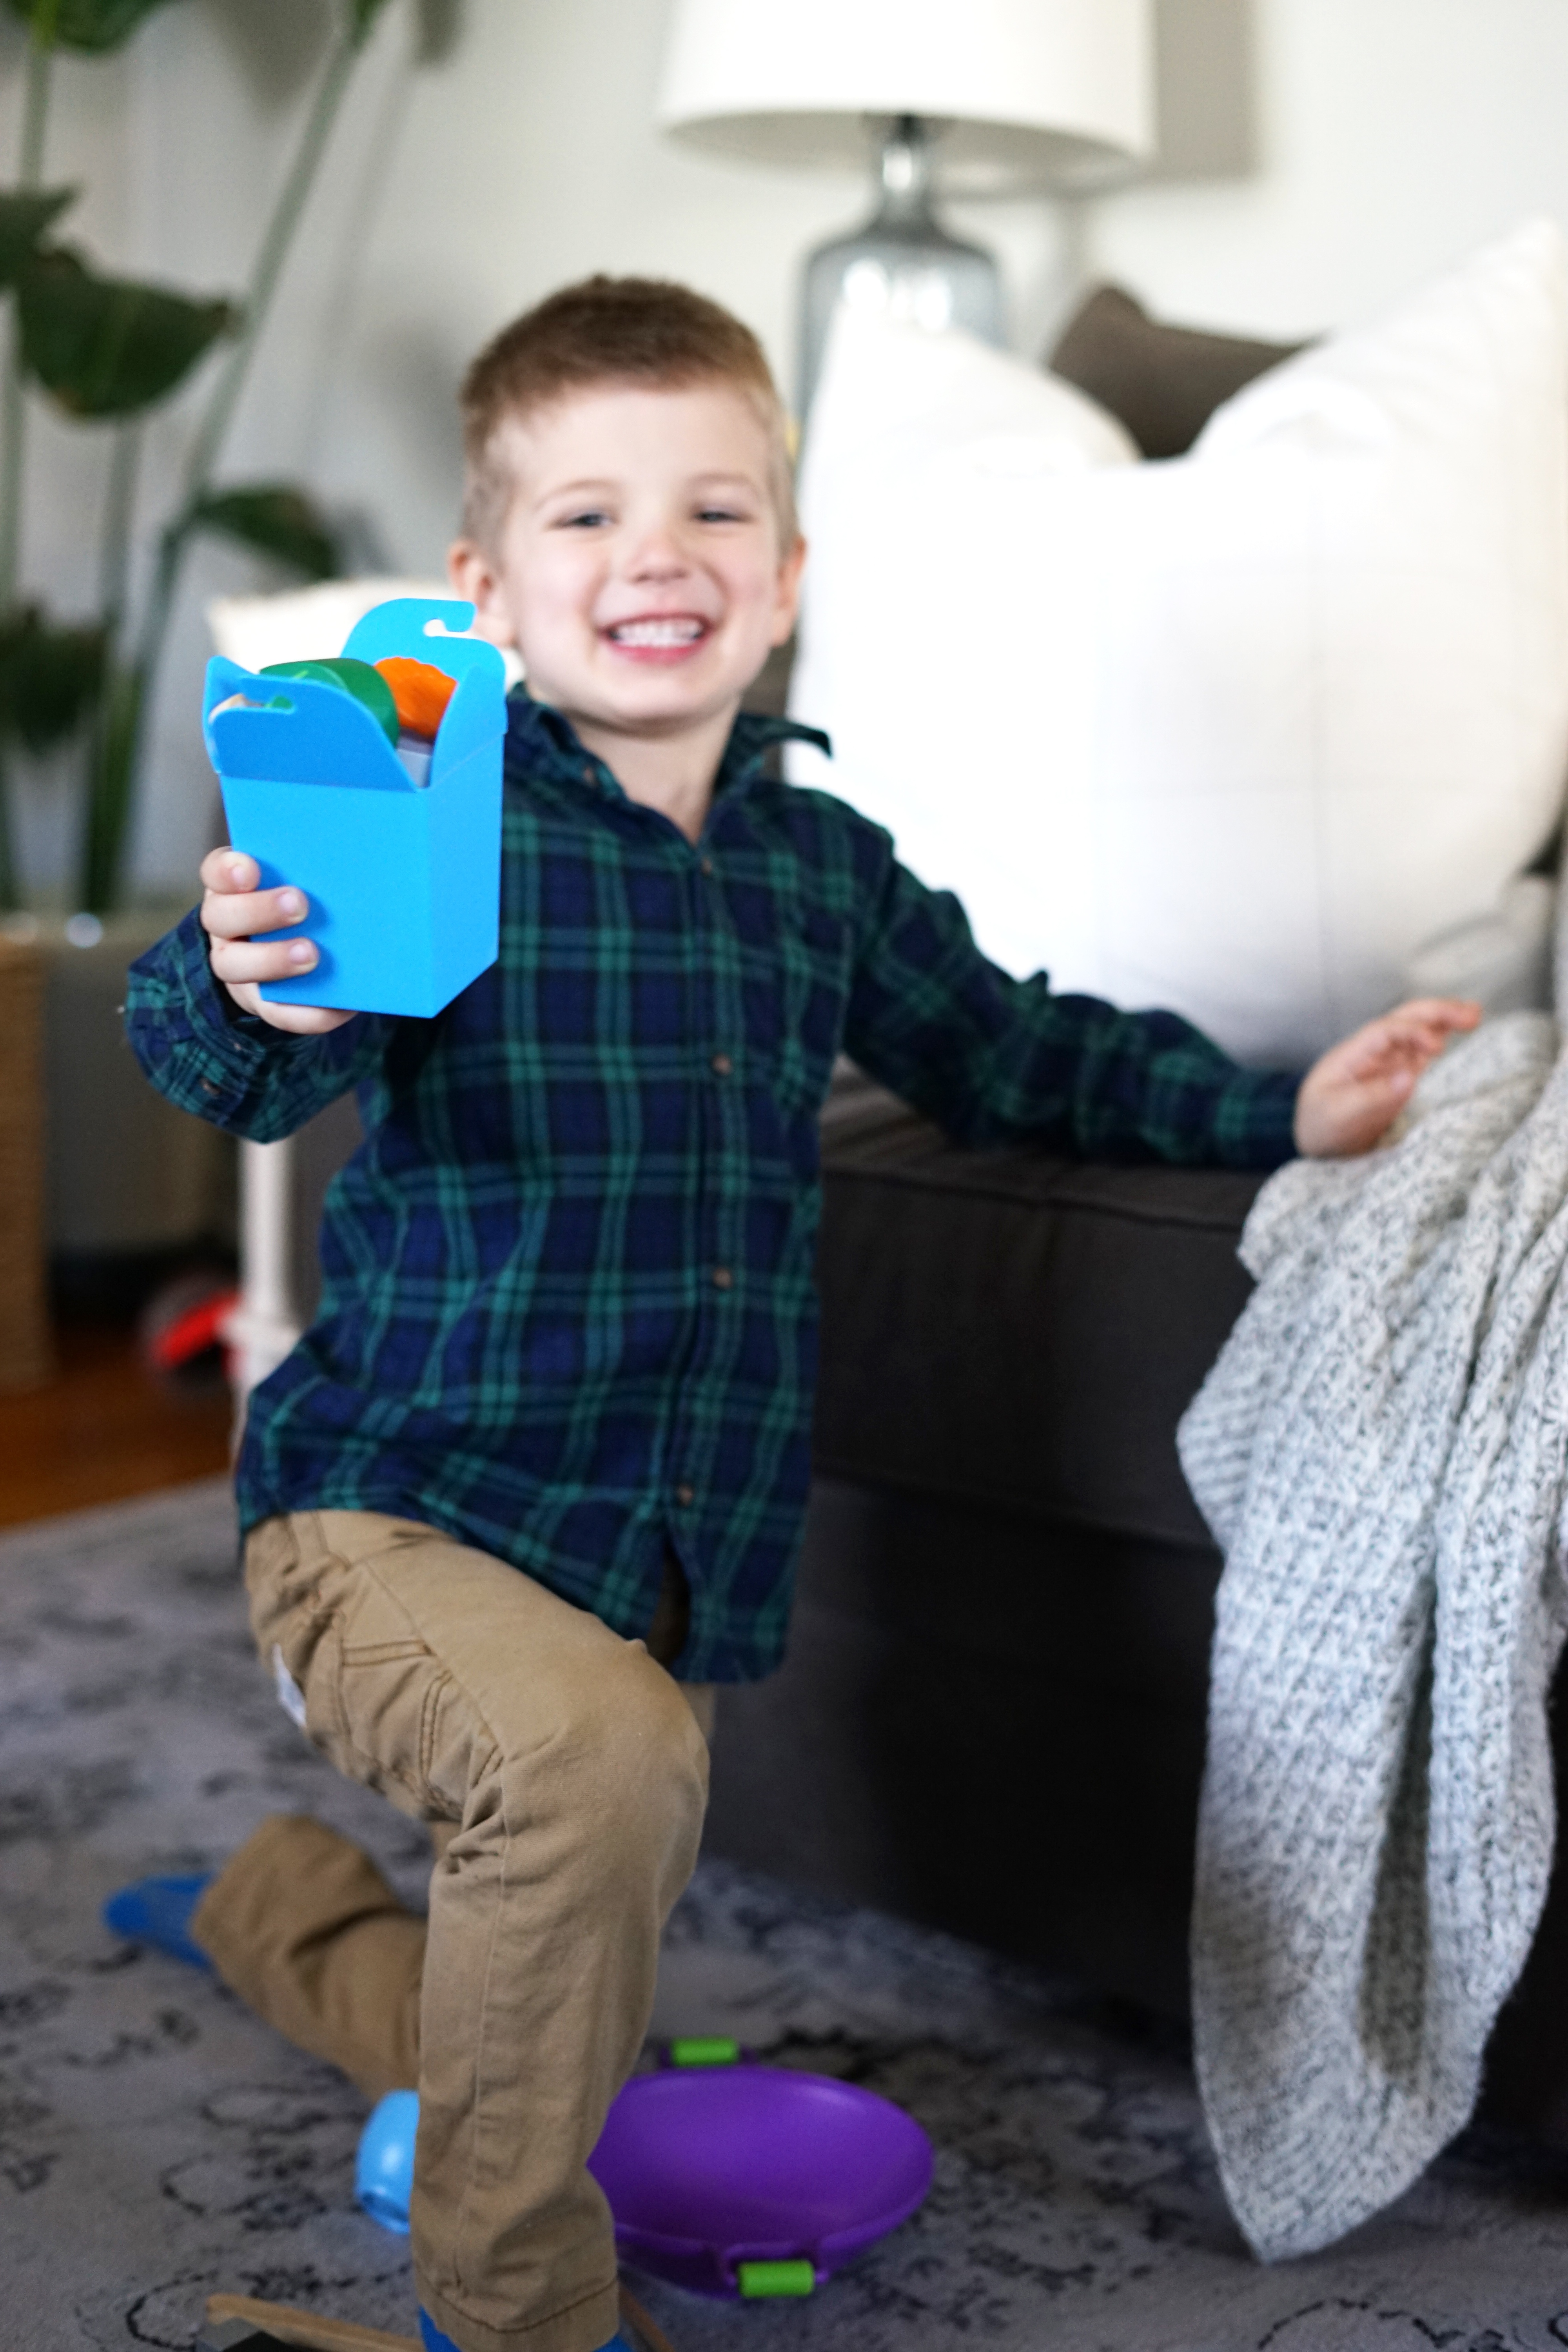 Kids Gift Guide - Midwest In Style